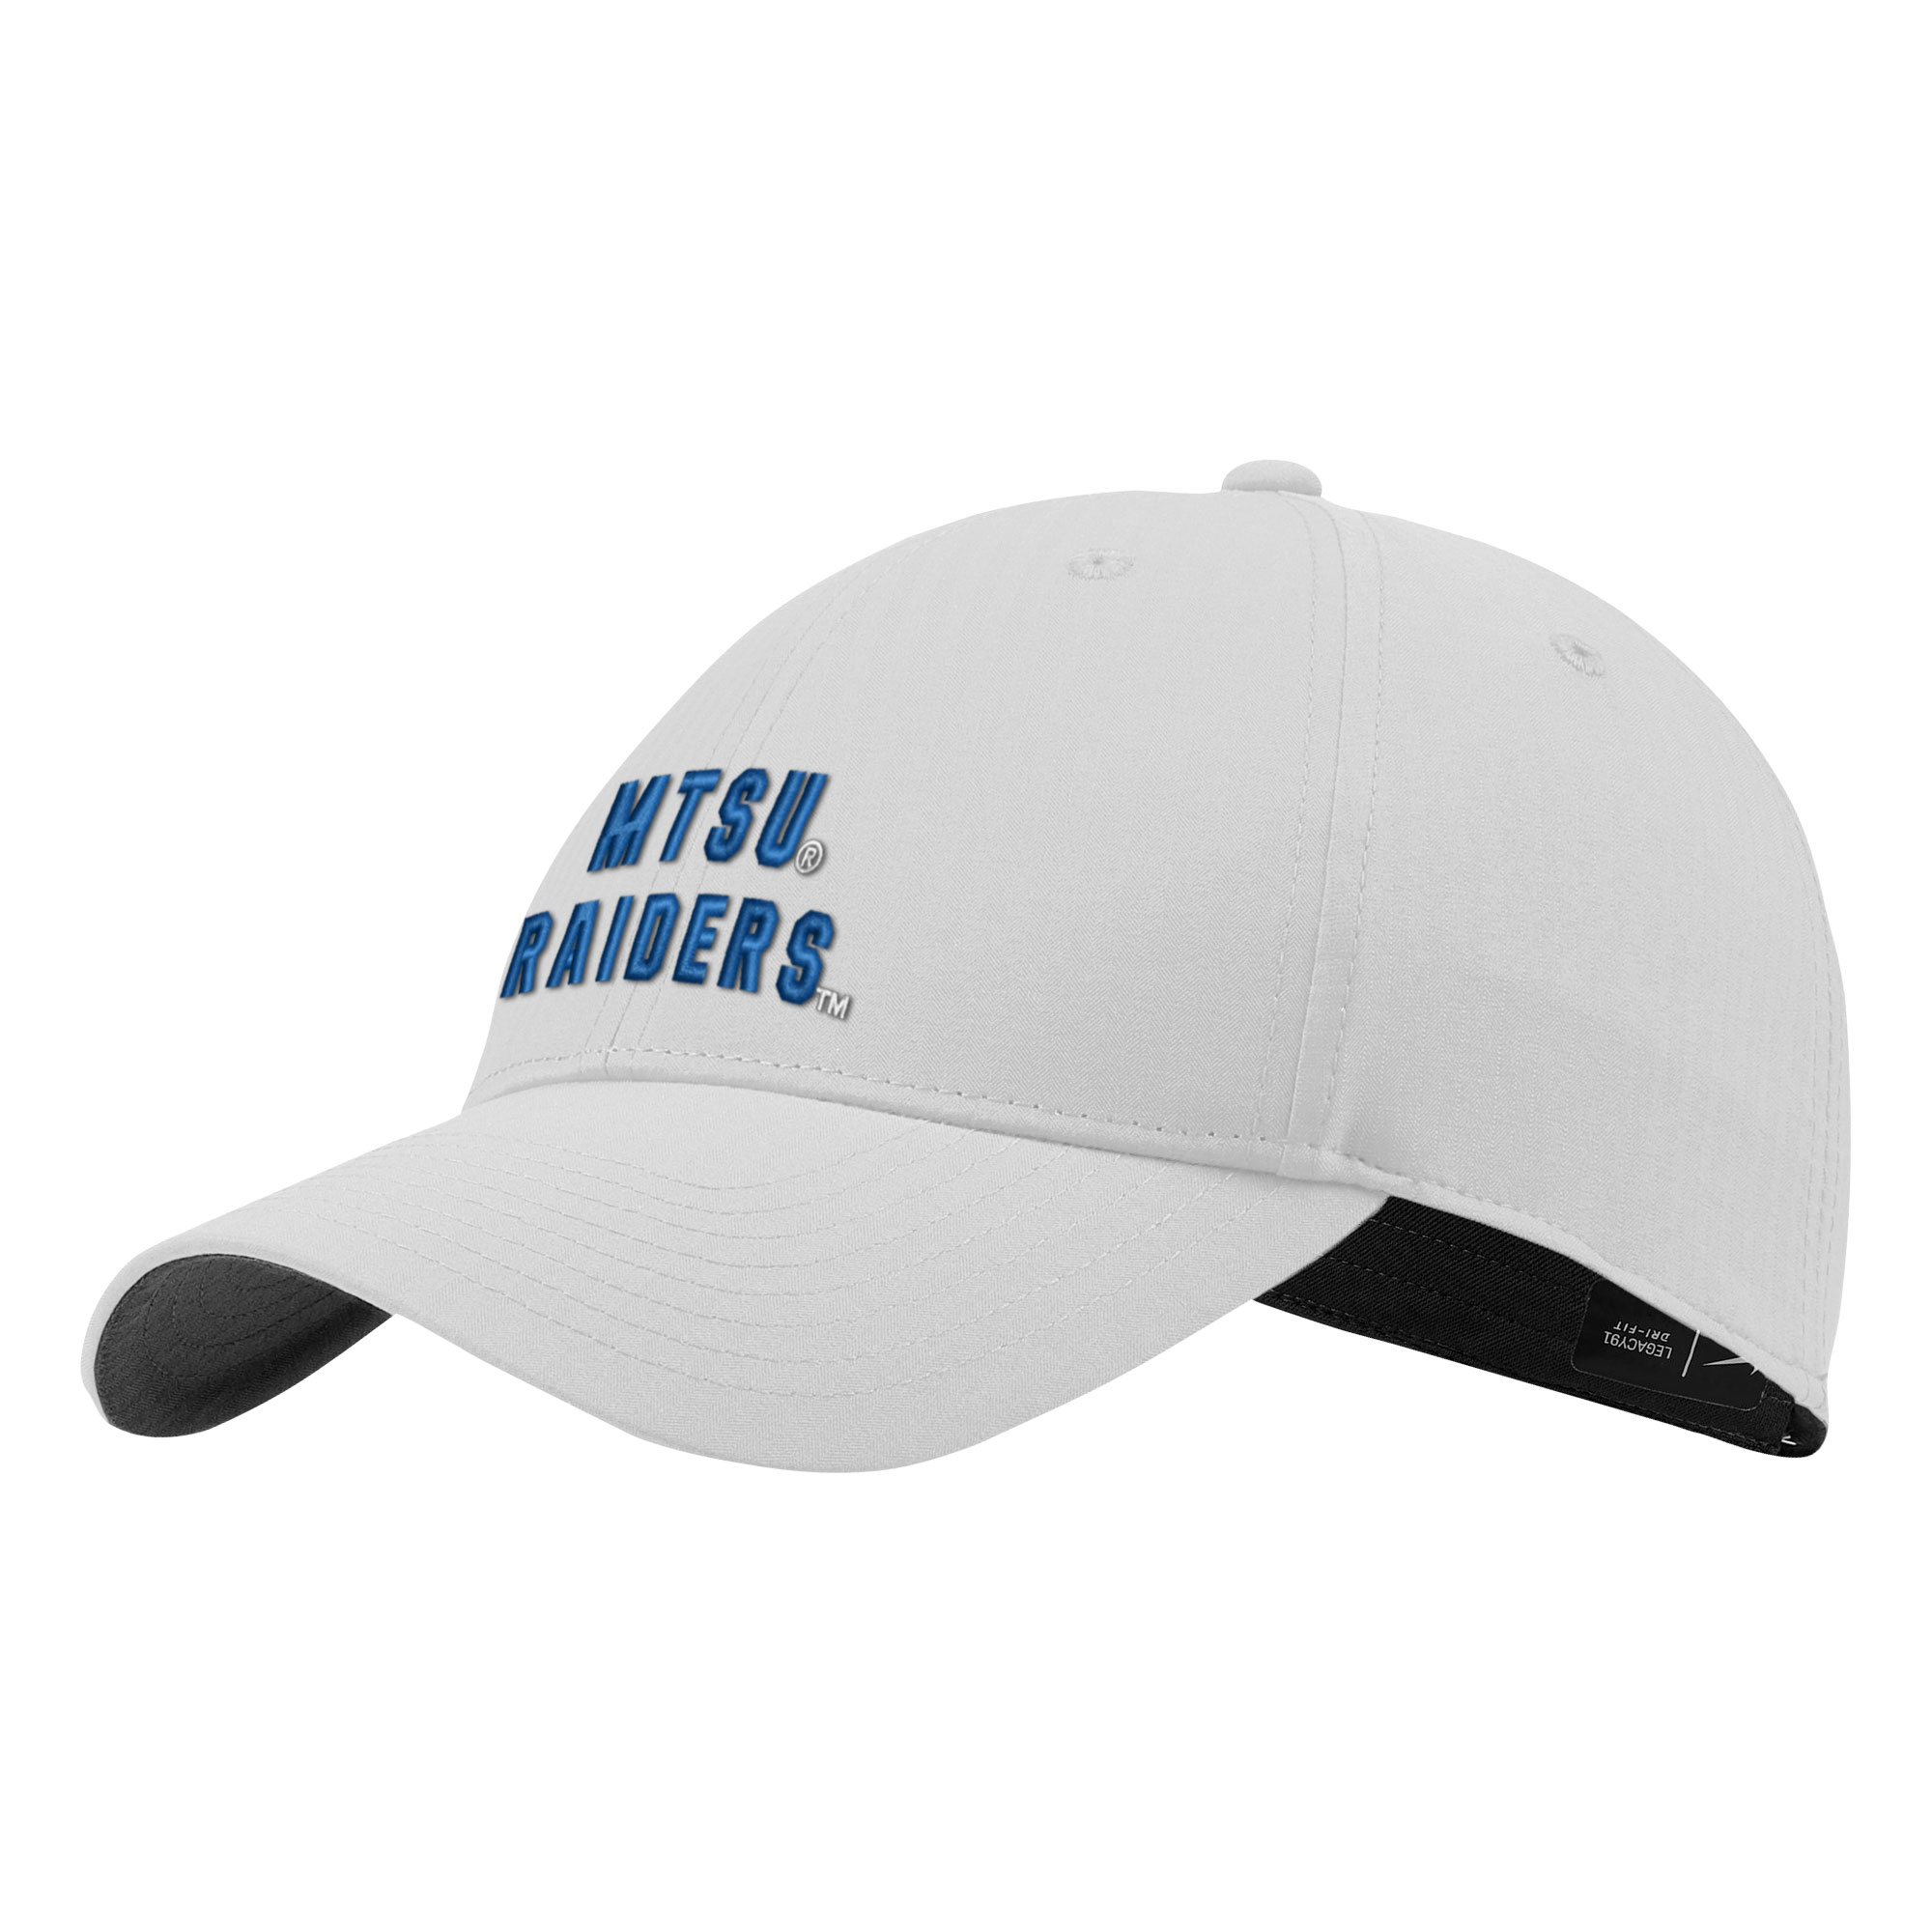 MTSU Raiders Nike® Tech Cap